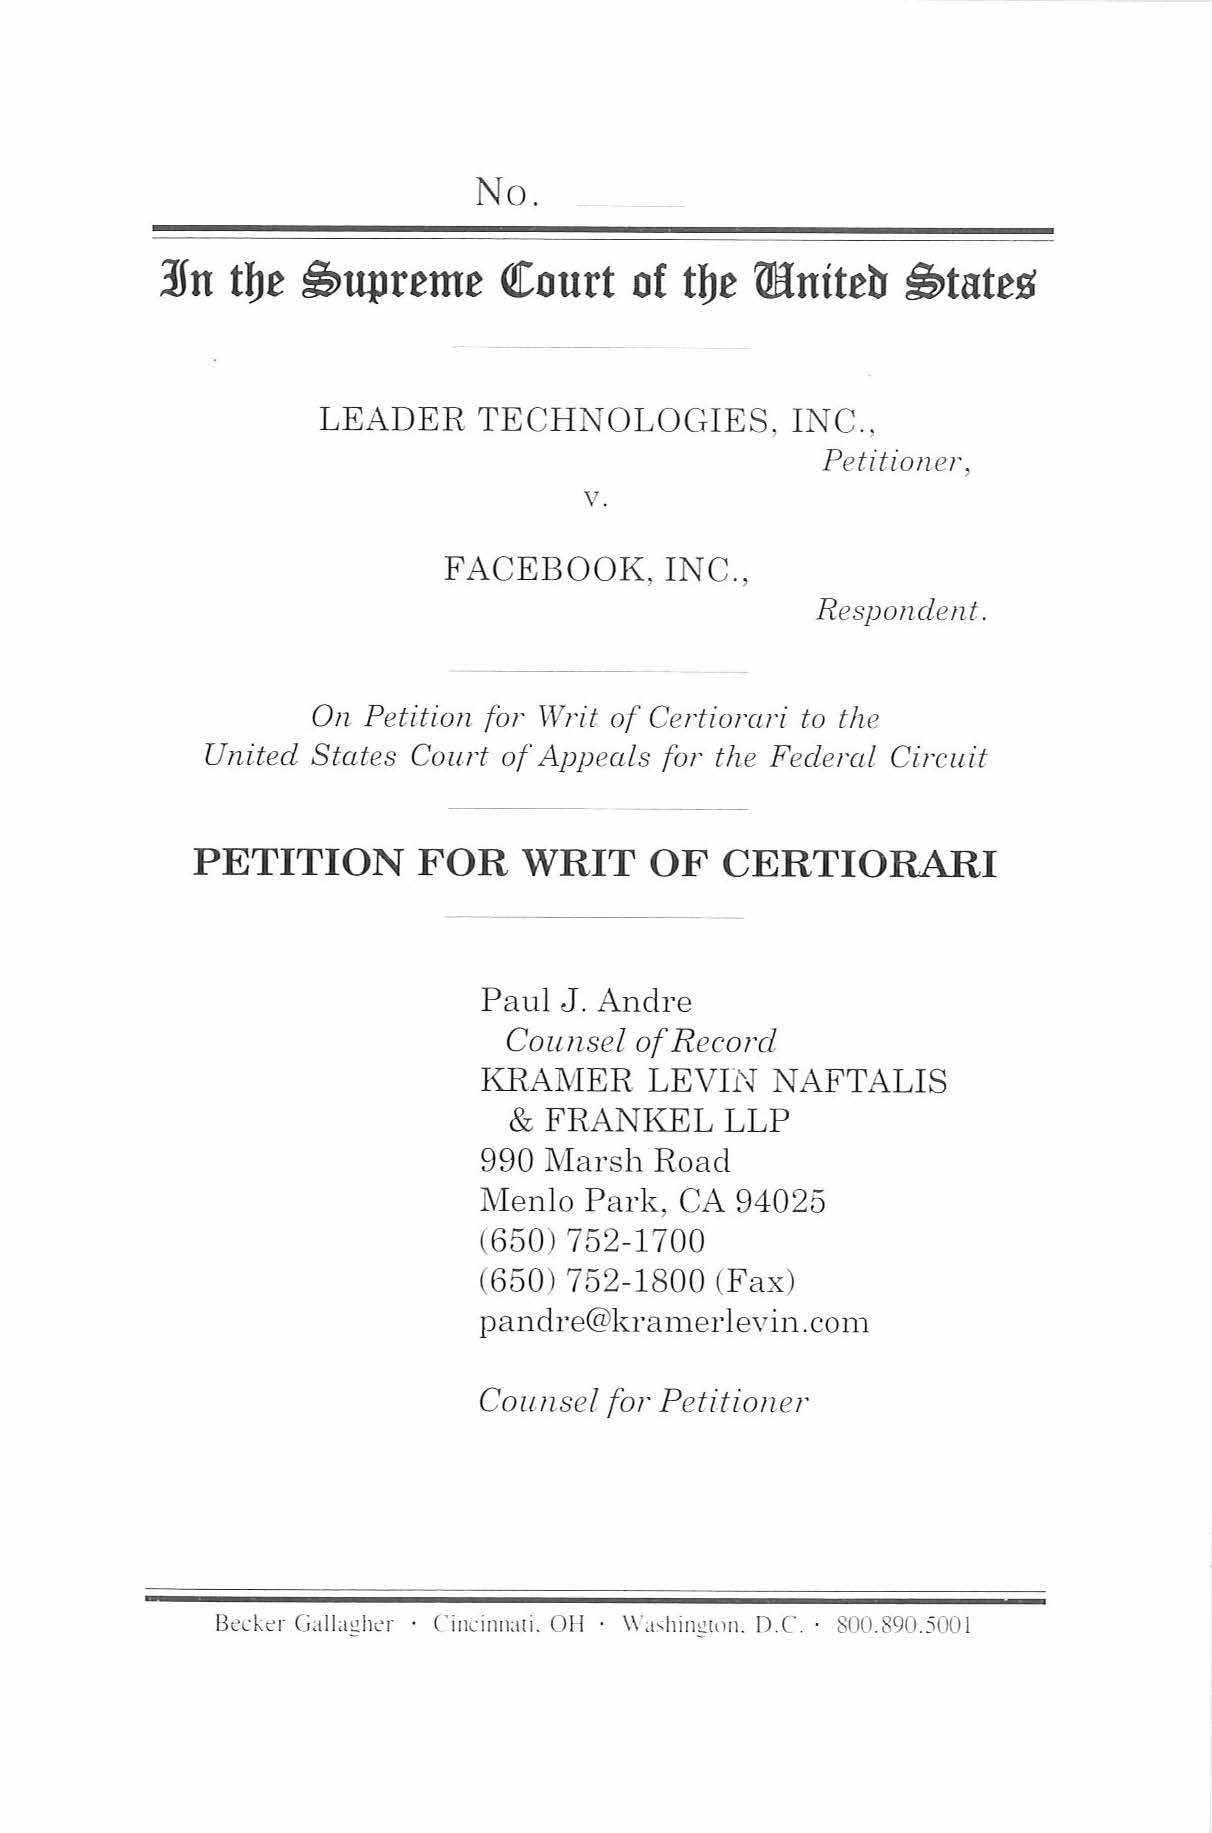 Petition for Writ of Certiorari, Leader Technologies, Inc., v. Facebook, Inc., No. 12-617 (U.S. Supreme Court 2012), filed Nov. 16, 2012.